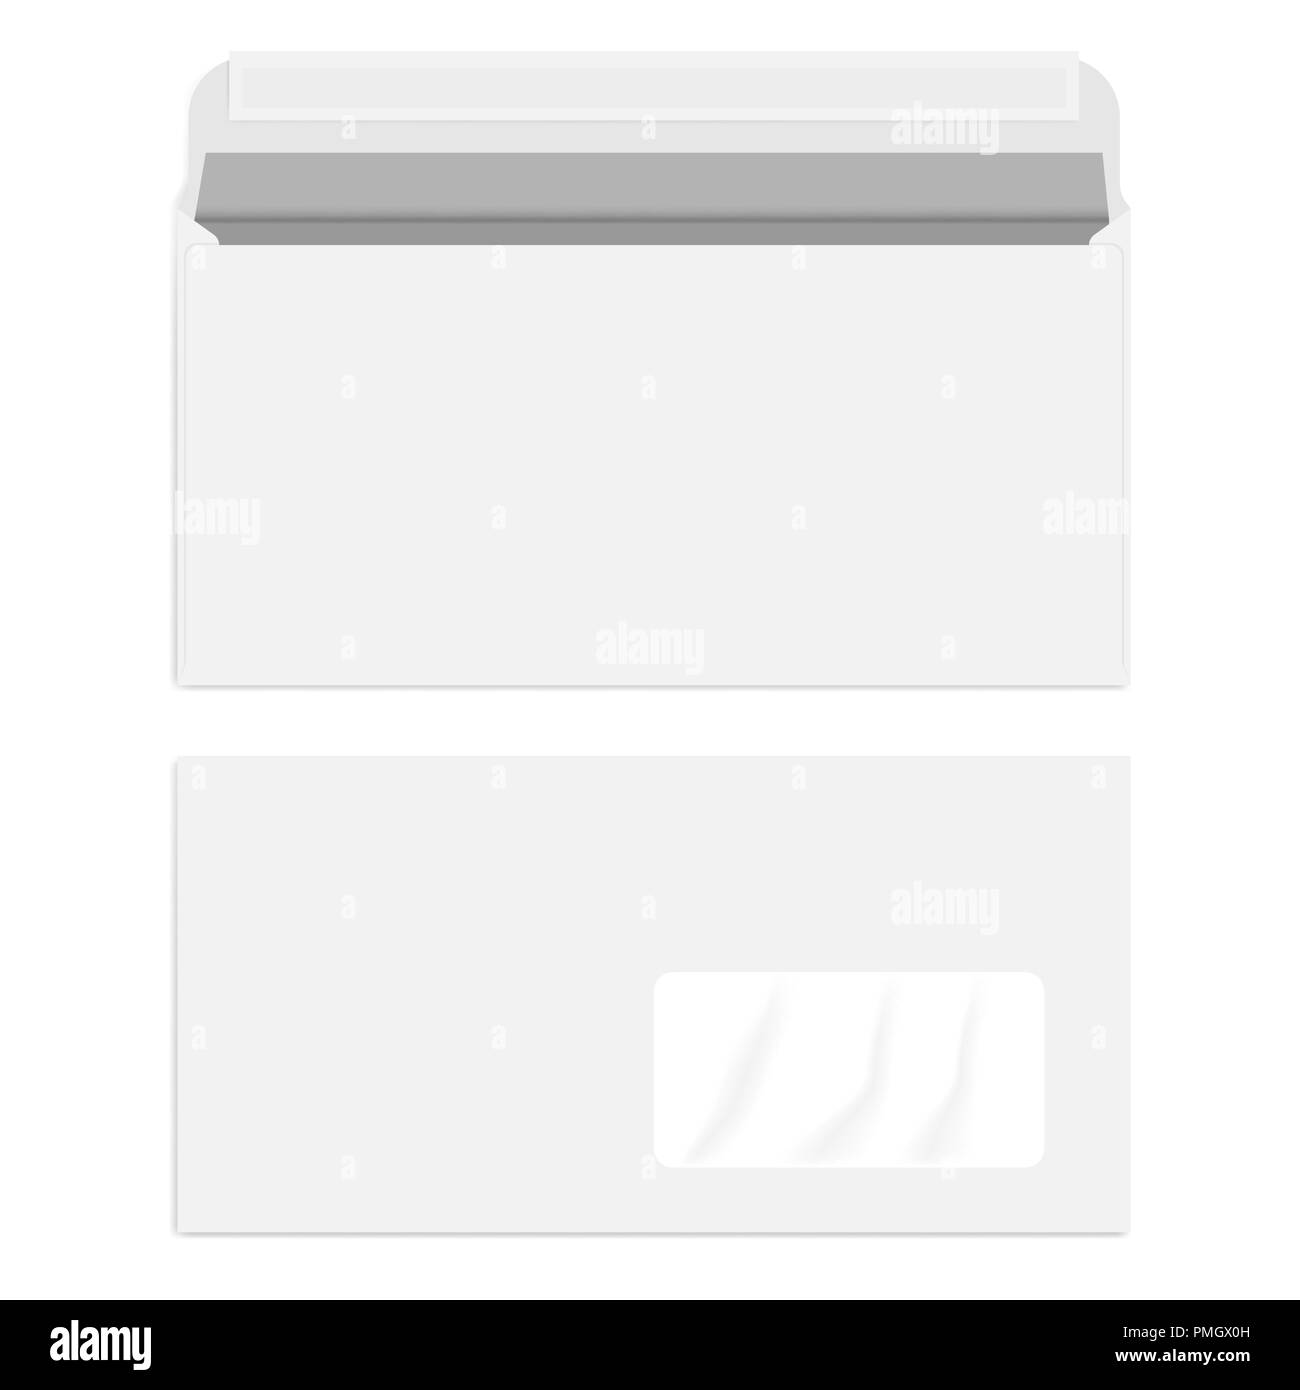 standard window envelope template.html